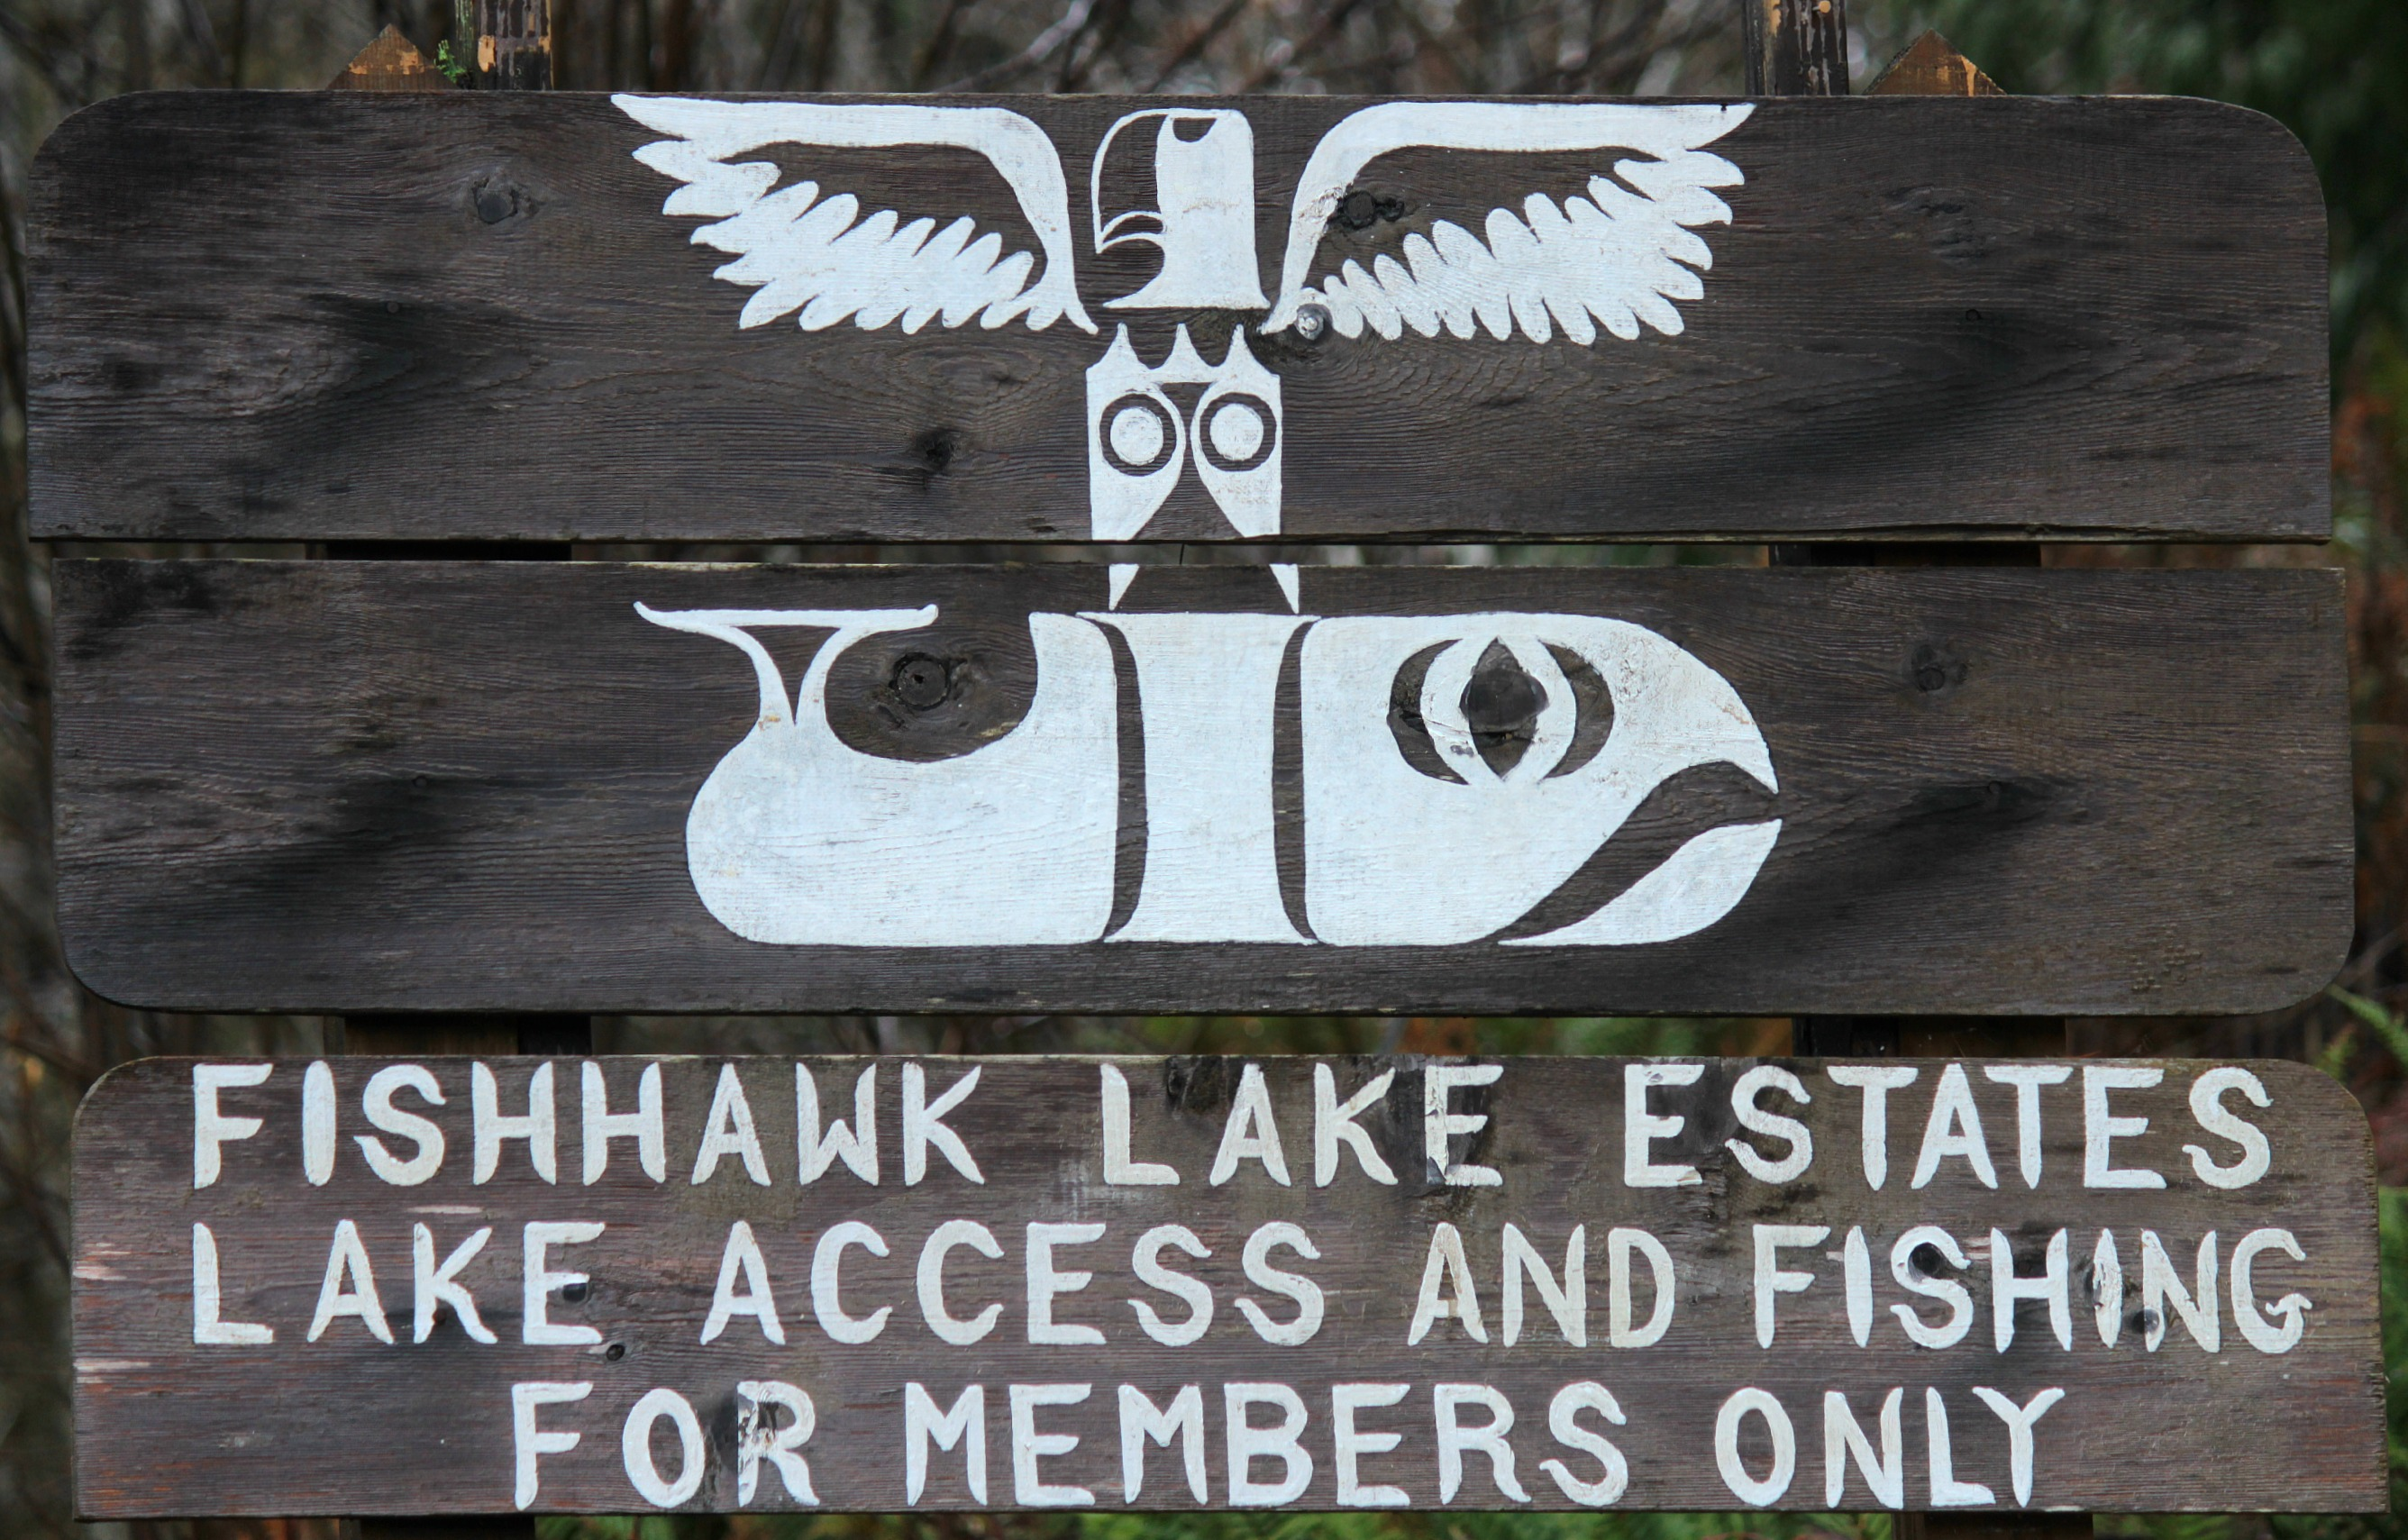 Fishhawk Lake Estates sign 1 2013-01-31 13.37.04